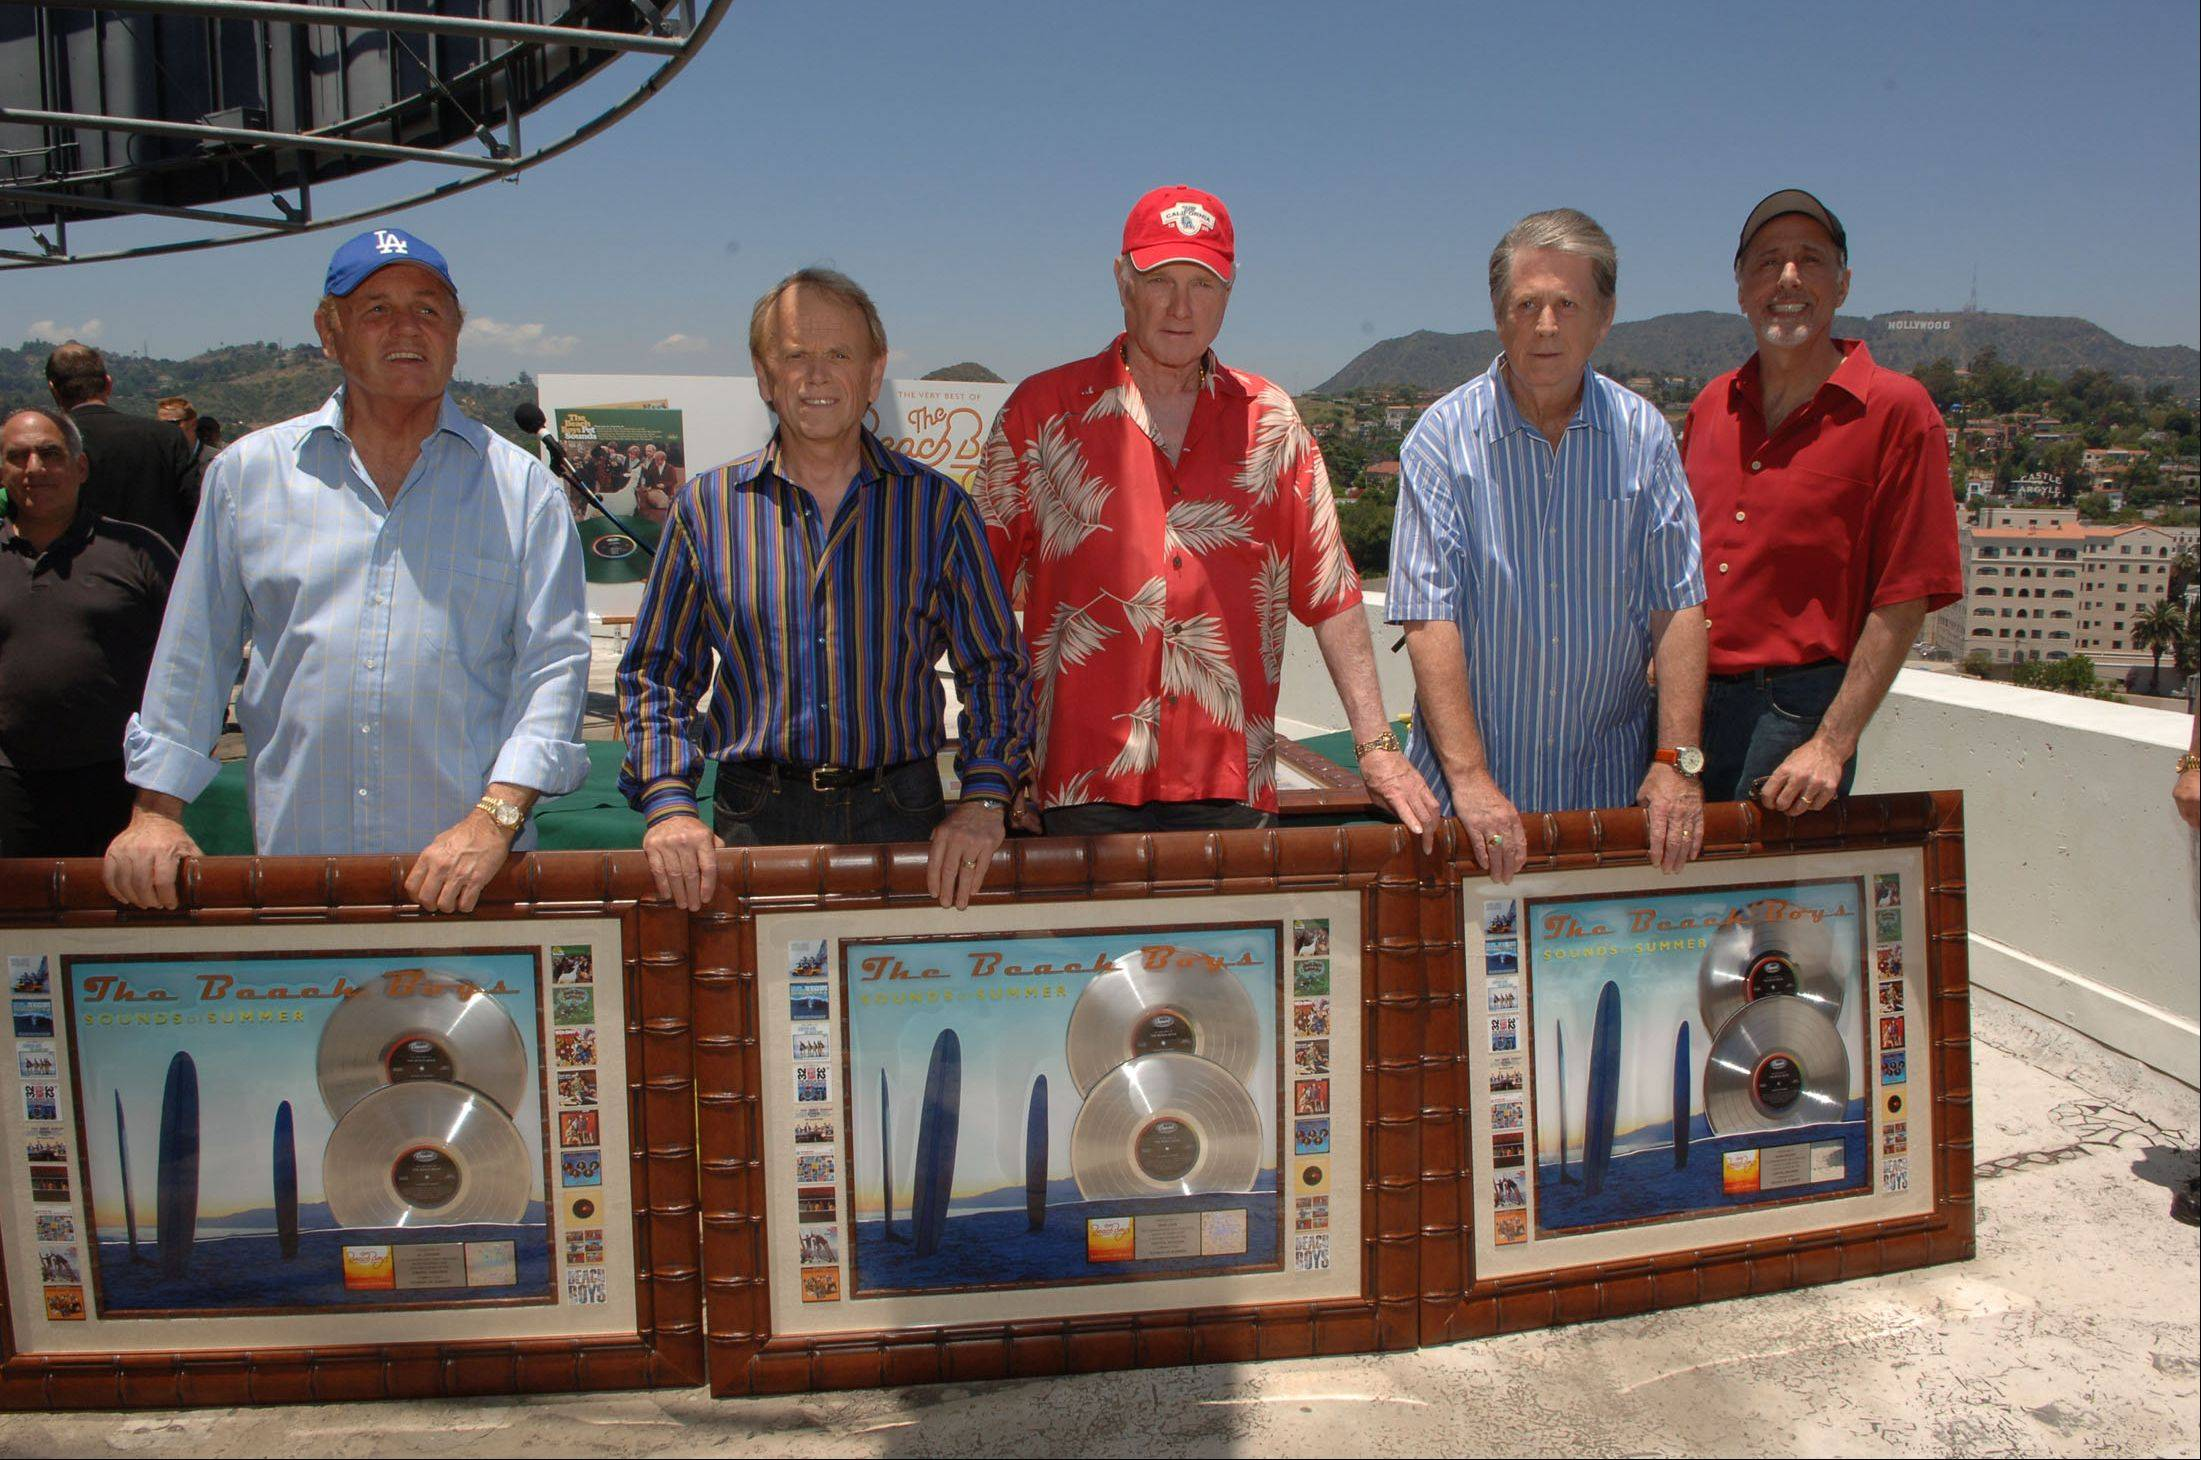 In this photo released by Capitol/EMI, The Beach Boys, from left, Bruce Johnston, Al Jardine, Mike Love, Brian Wilson and David Marks, pose together on the rooftop of Capitol Records in Los Angeles in 2006.